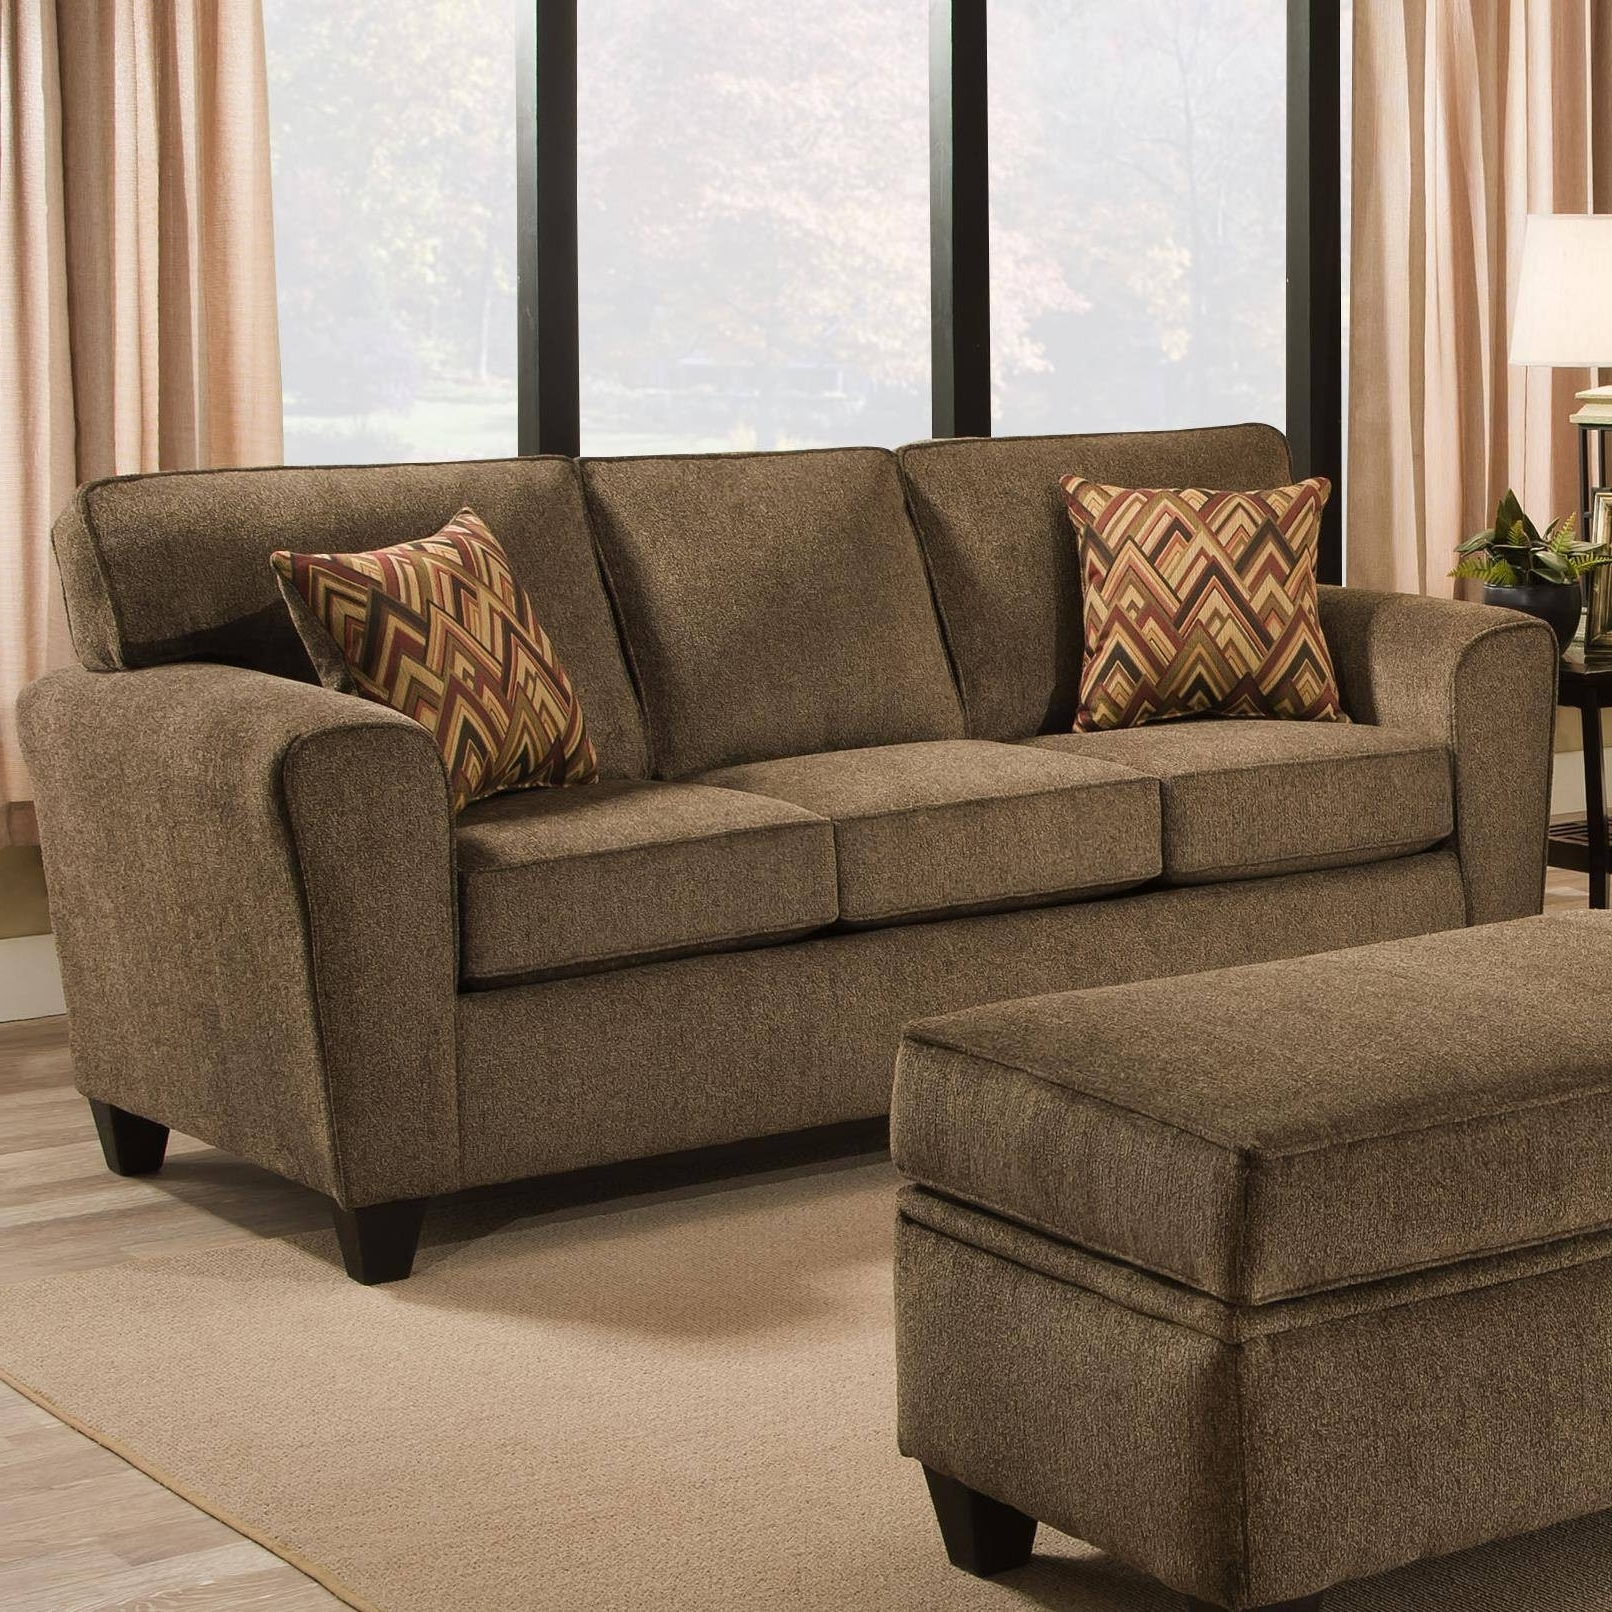 Trendy Furniture : Ethan Allen Down Filled Sofa Beautiful Sectional Sofas Regarding Down Filled Sofas (View 15 of 15)